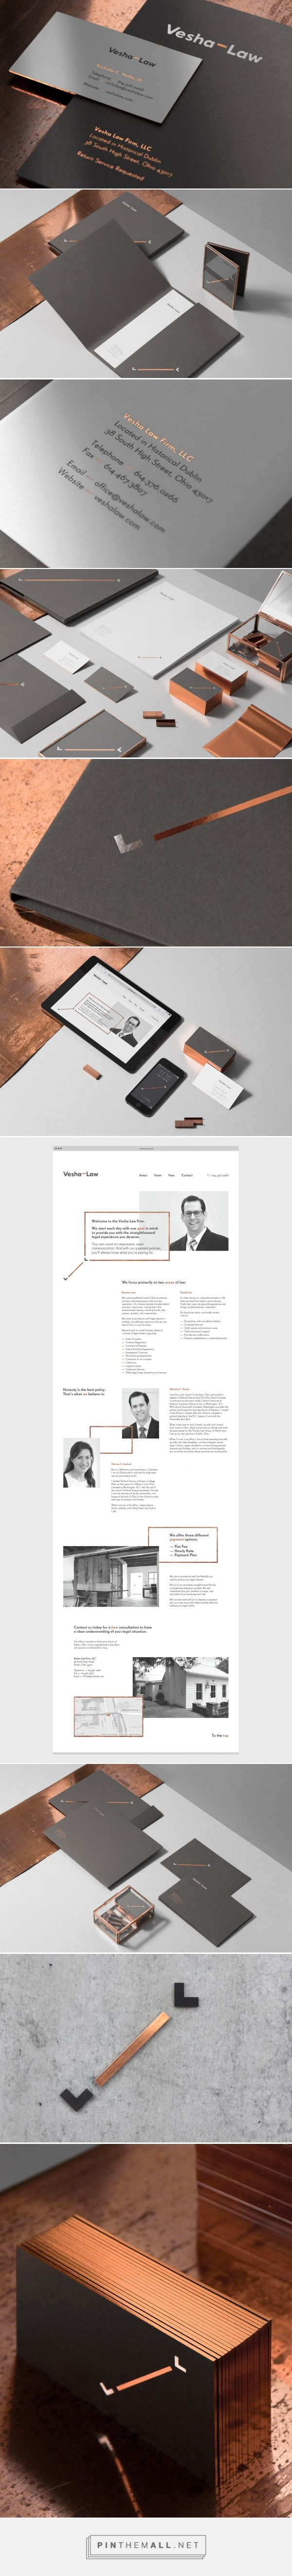 Vesha Law / by for brands.™